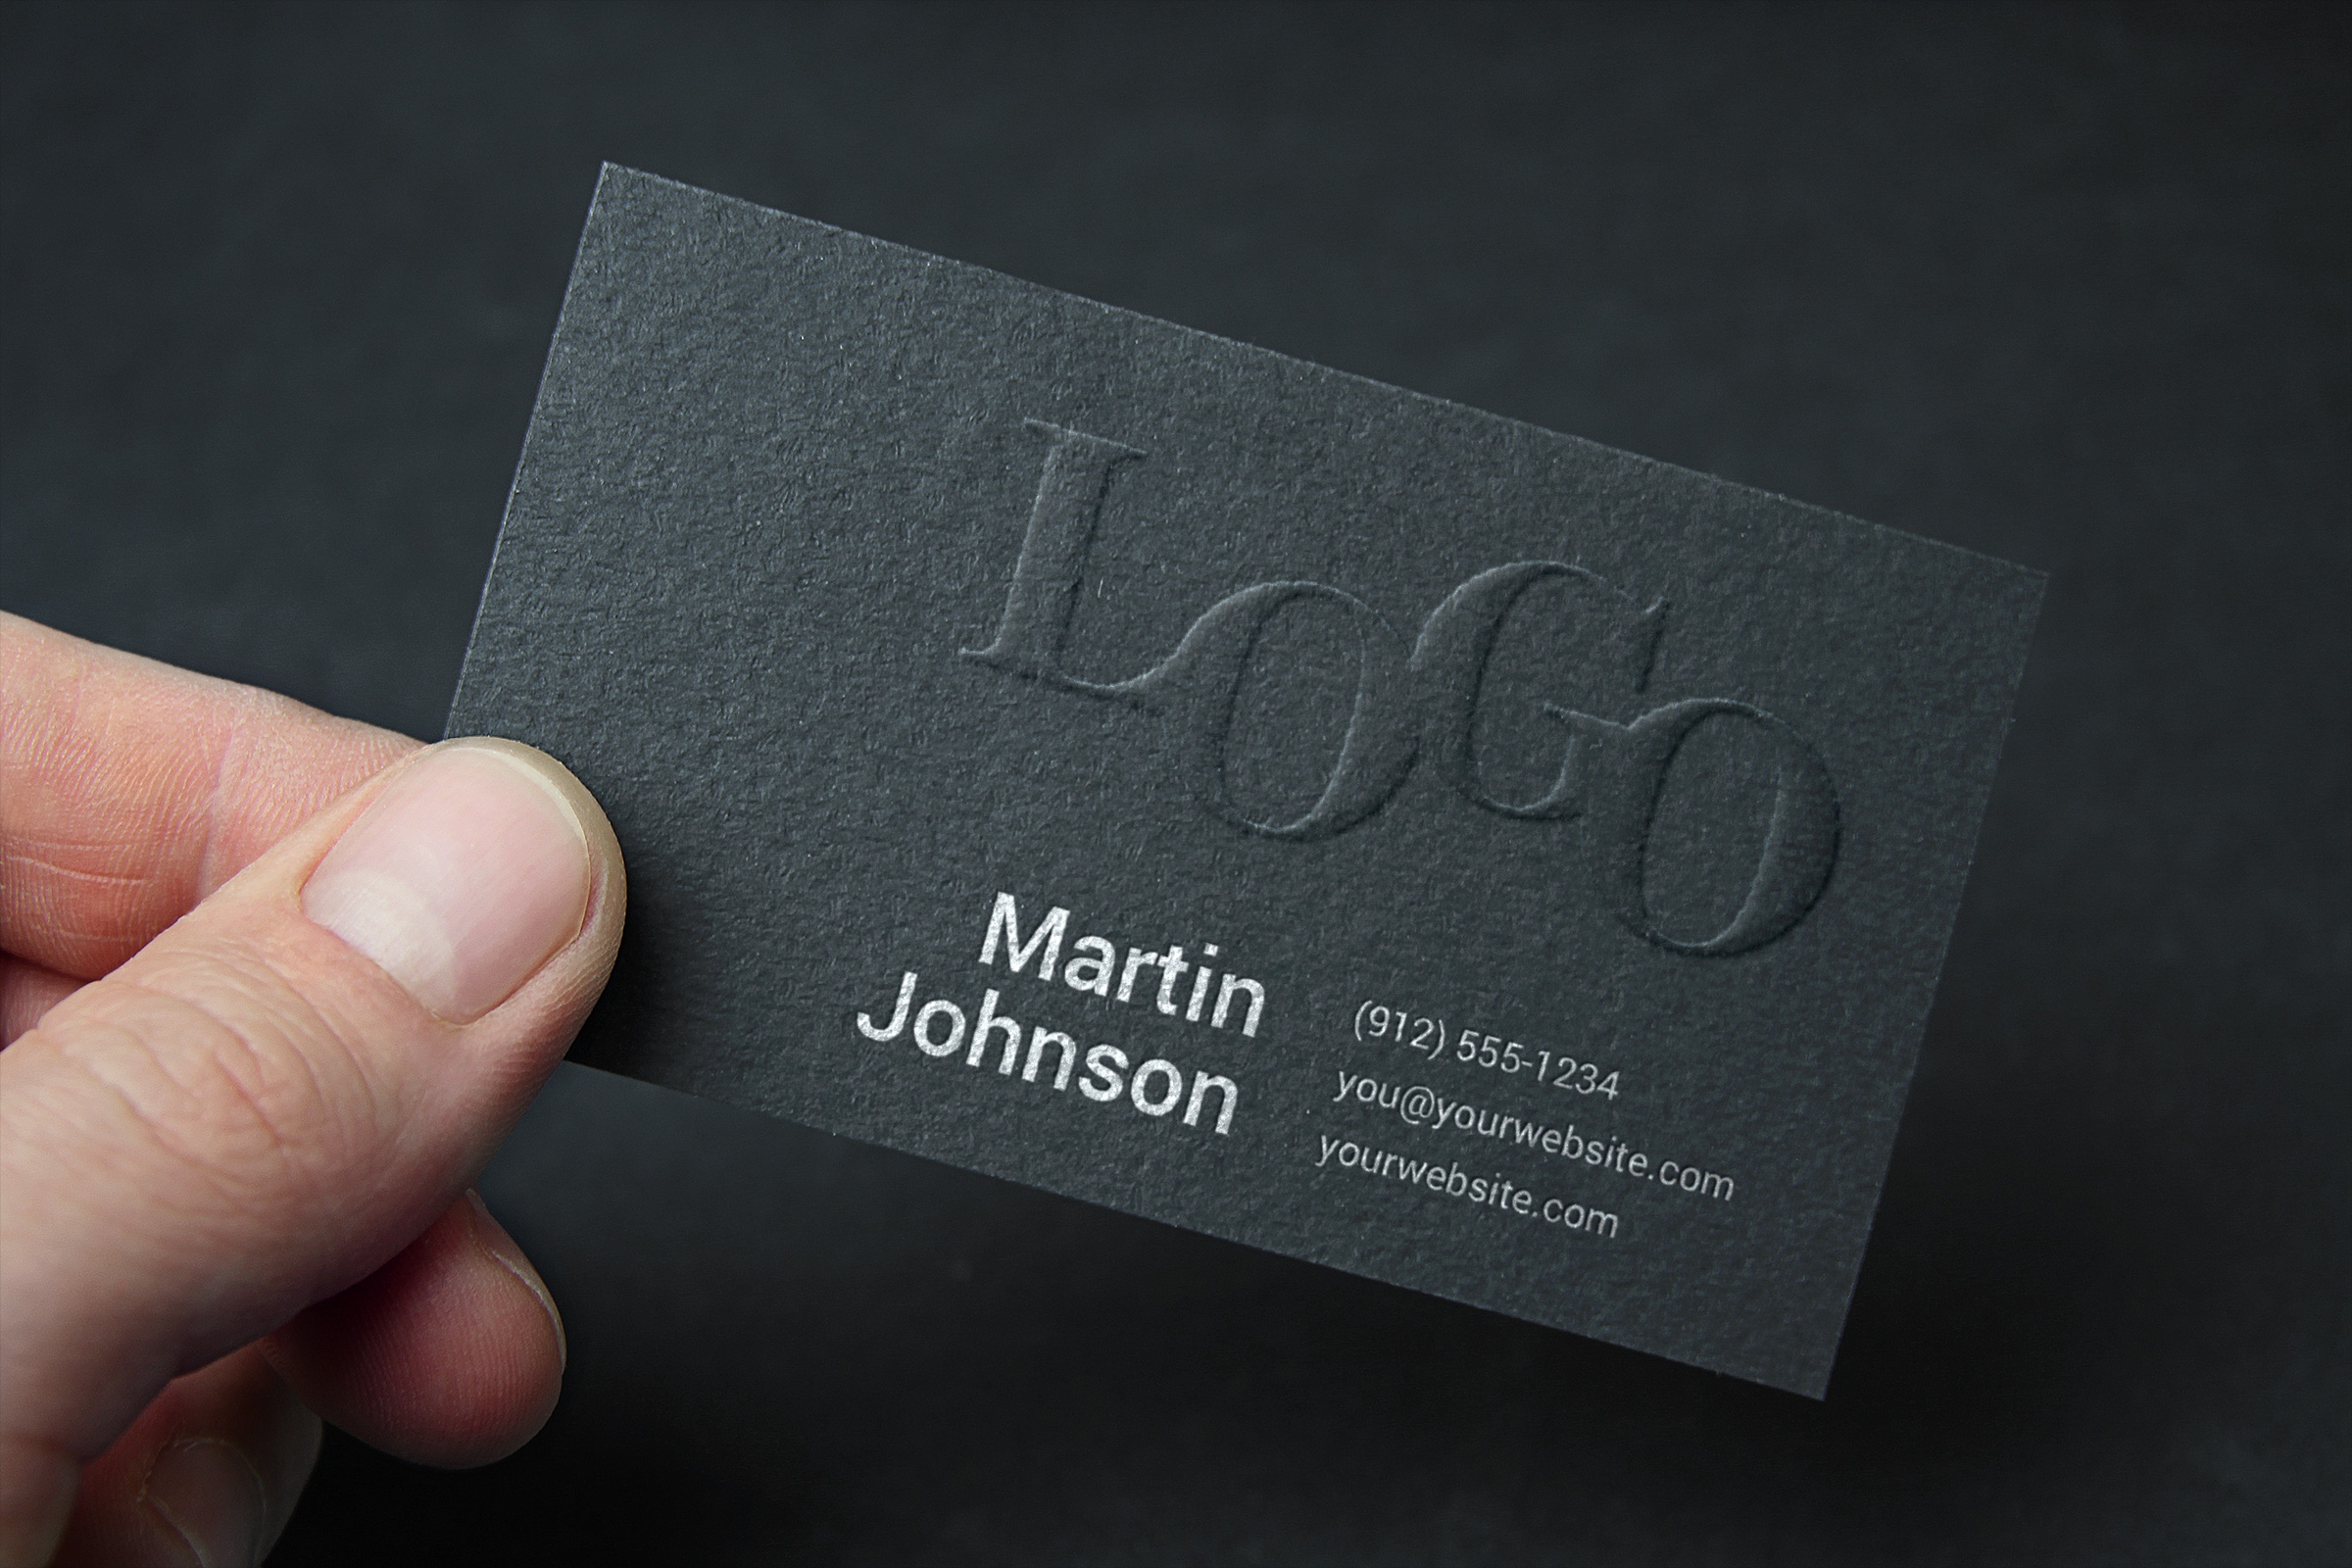 Cheap business cards melbourne sydney perth brisbane adelaide vintage business cards slim business cards embossing on business cards reheart Gallery